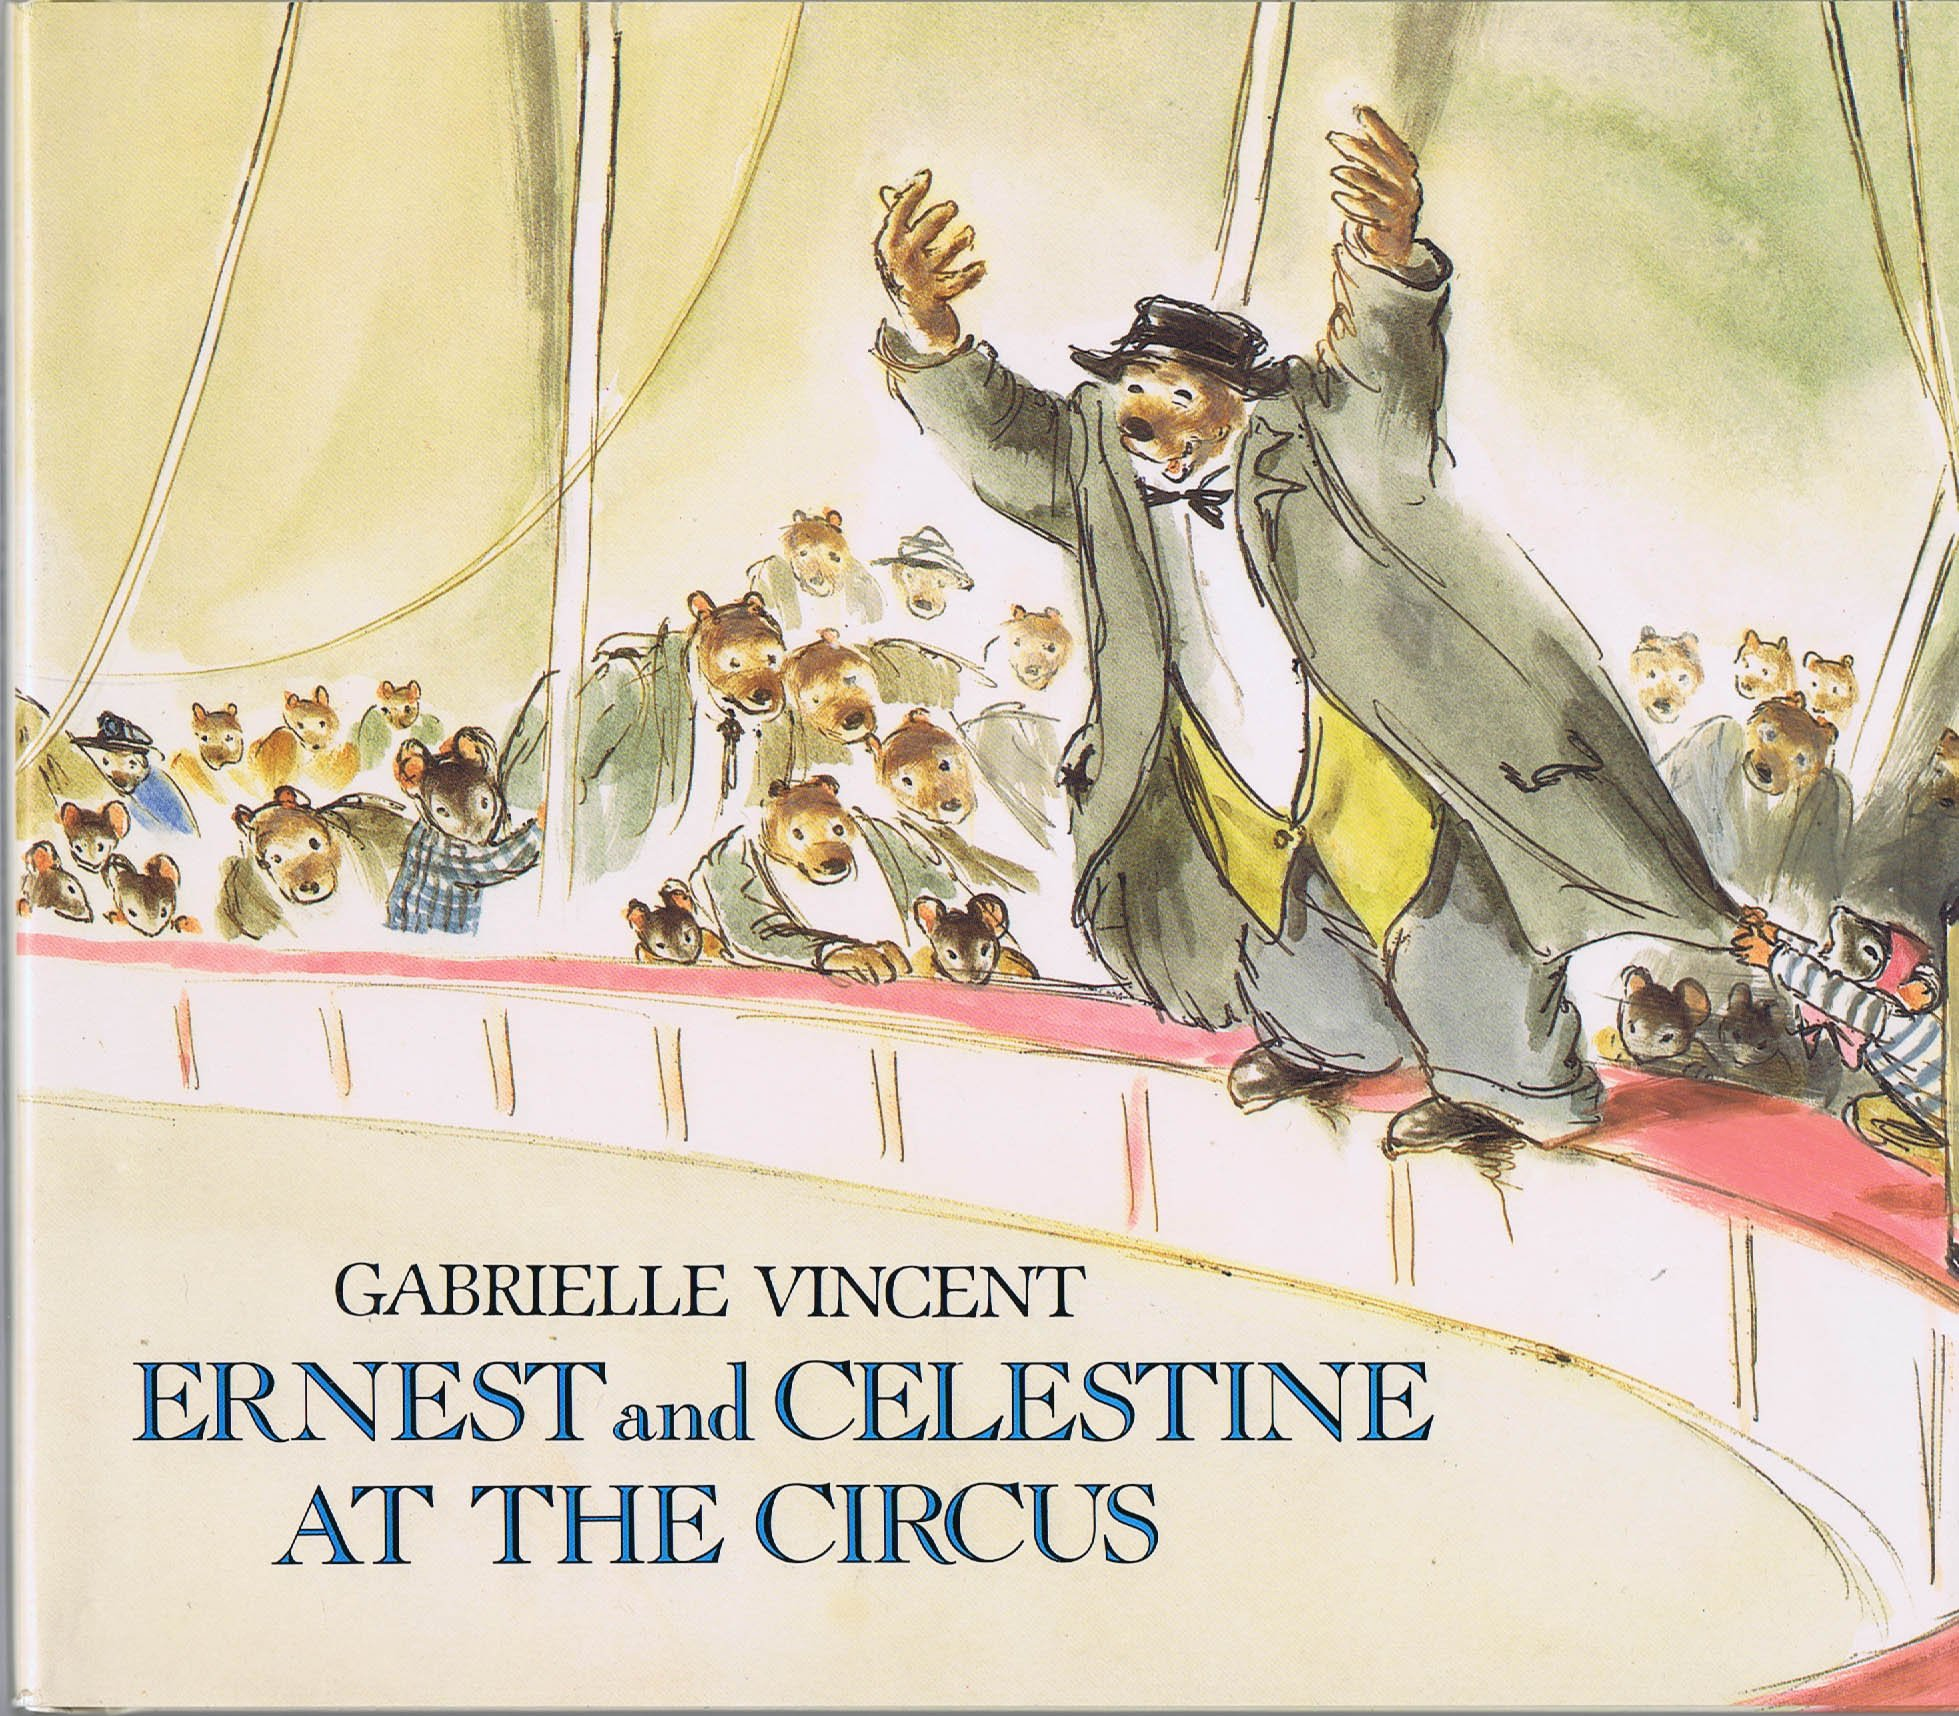 Ernest And Celestine At The Circus Vincent Gabrielle 9780688086848 Amazon Com Books